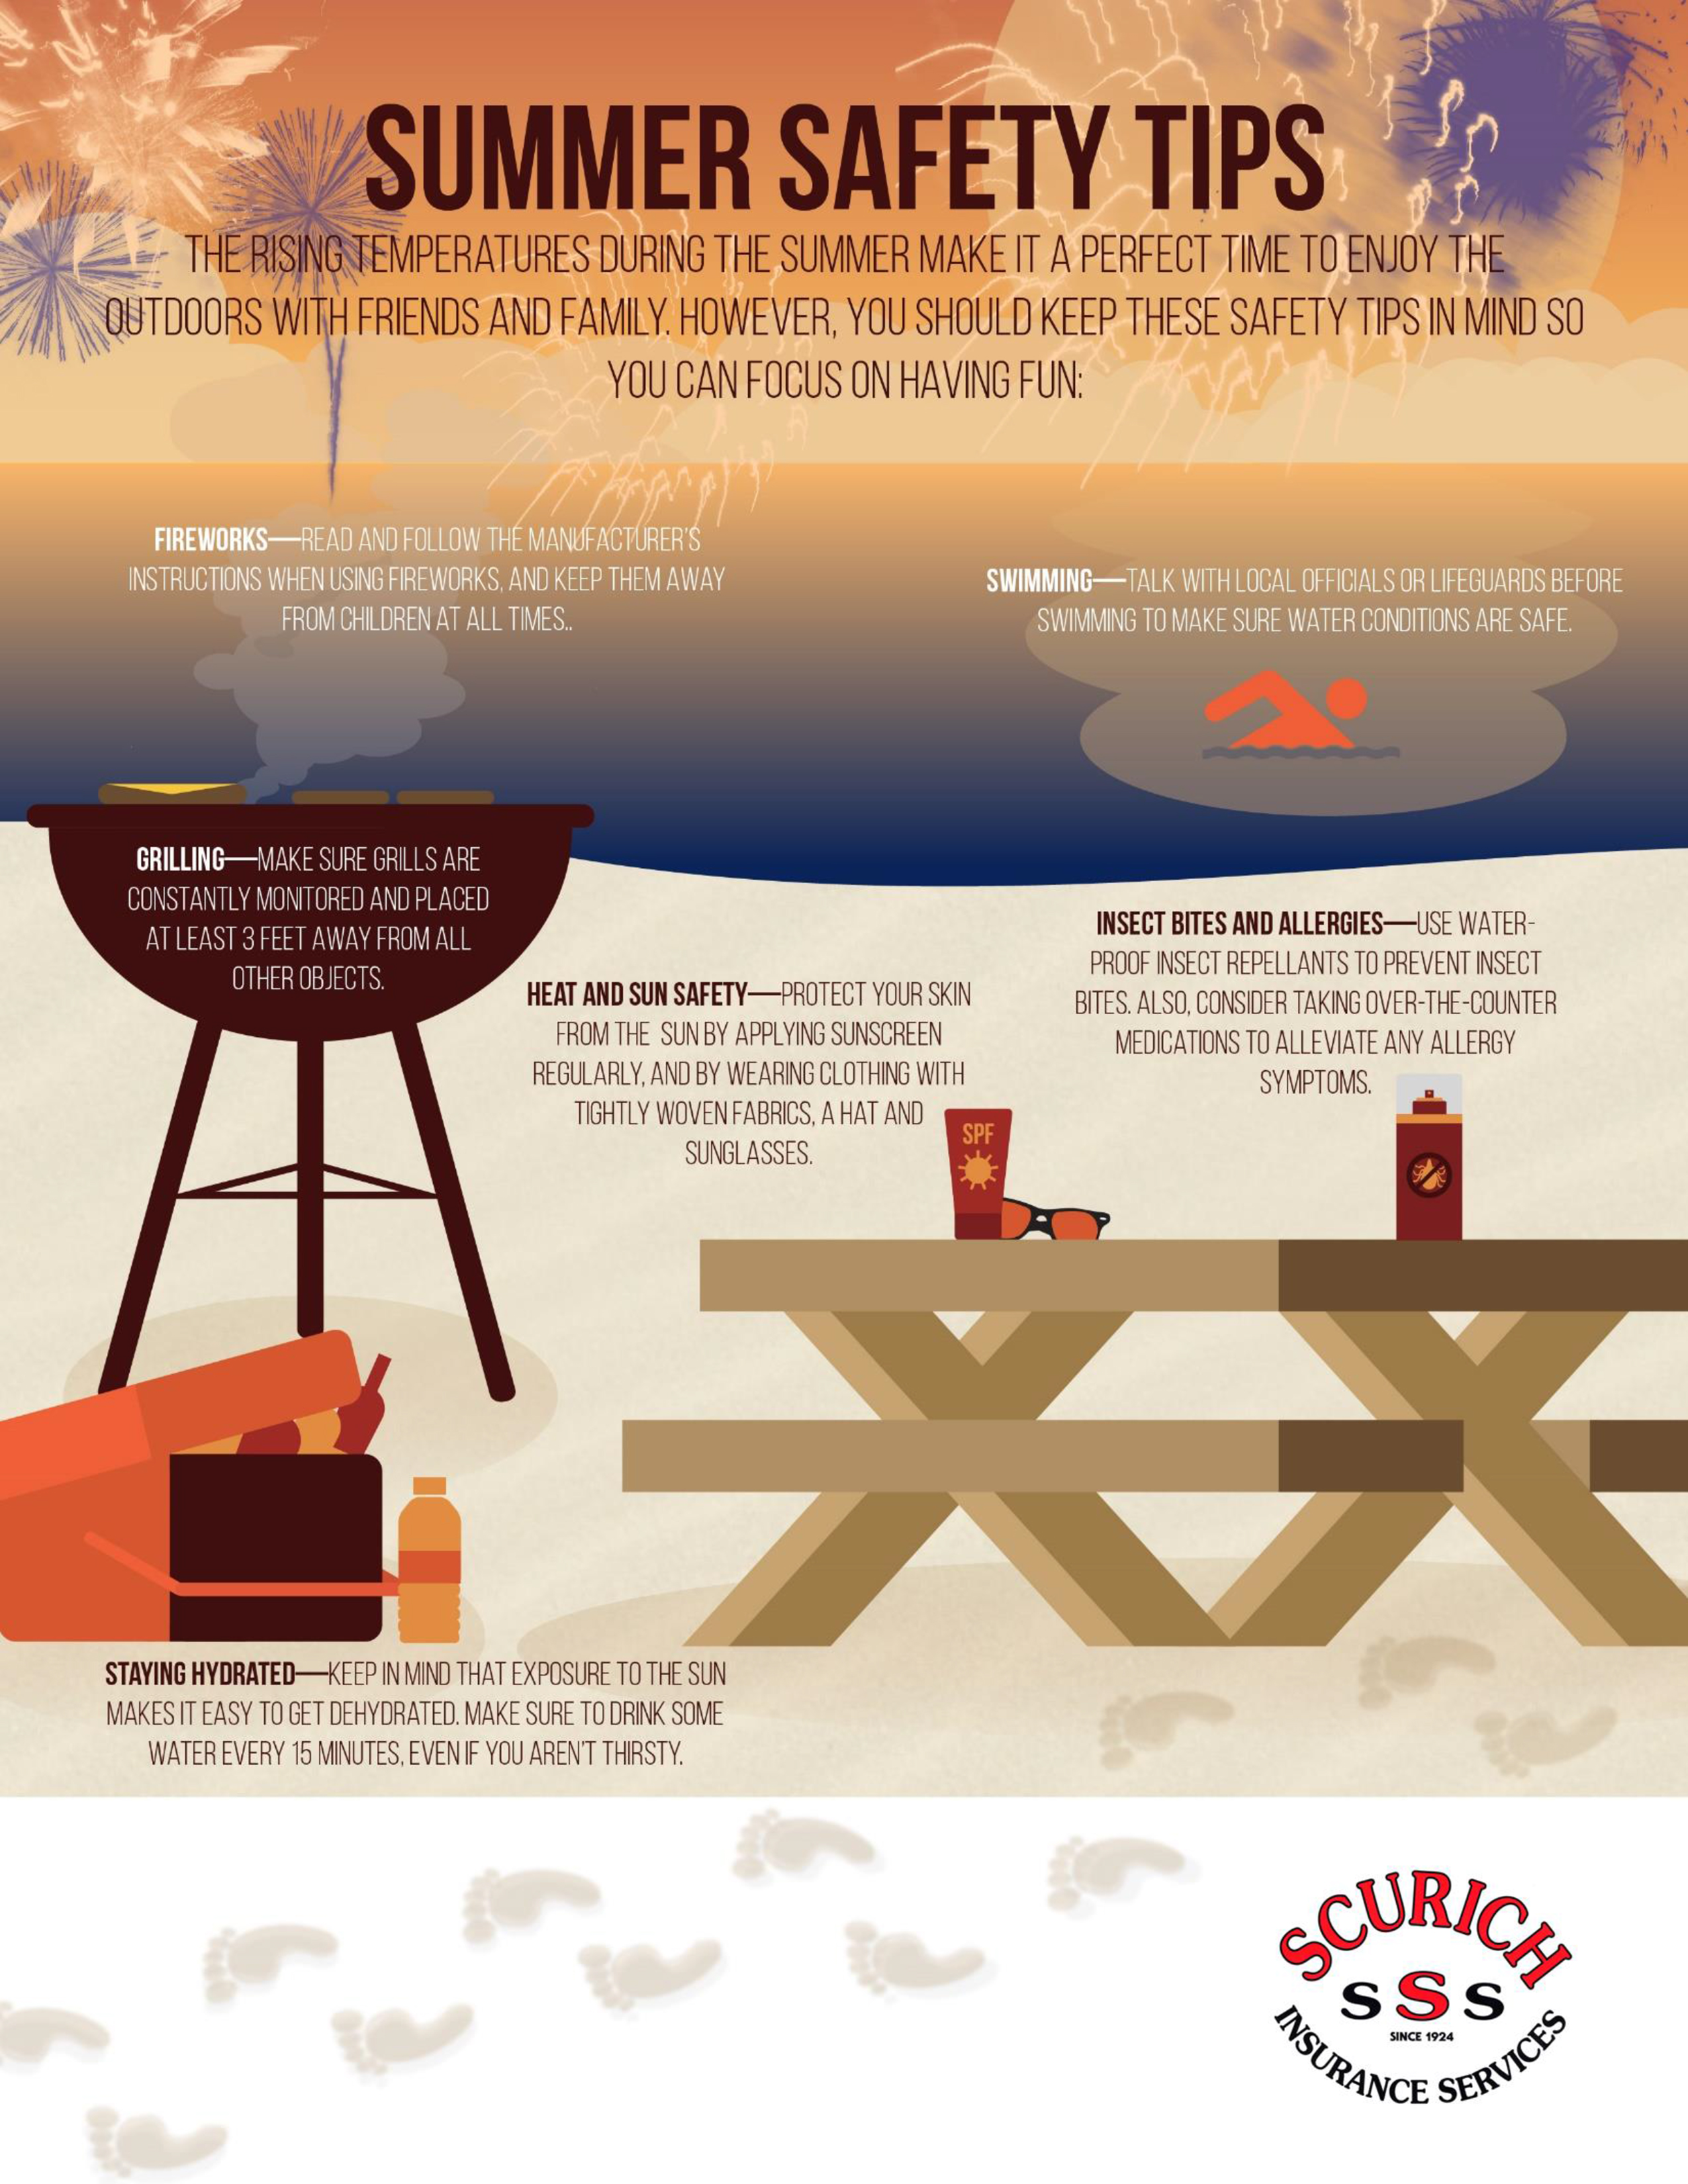 Summer Safety Tips Info Graphic Scurich Insurance Services